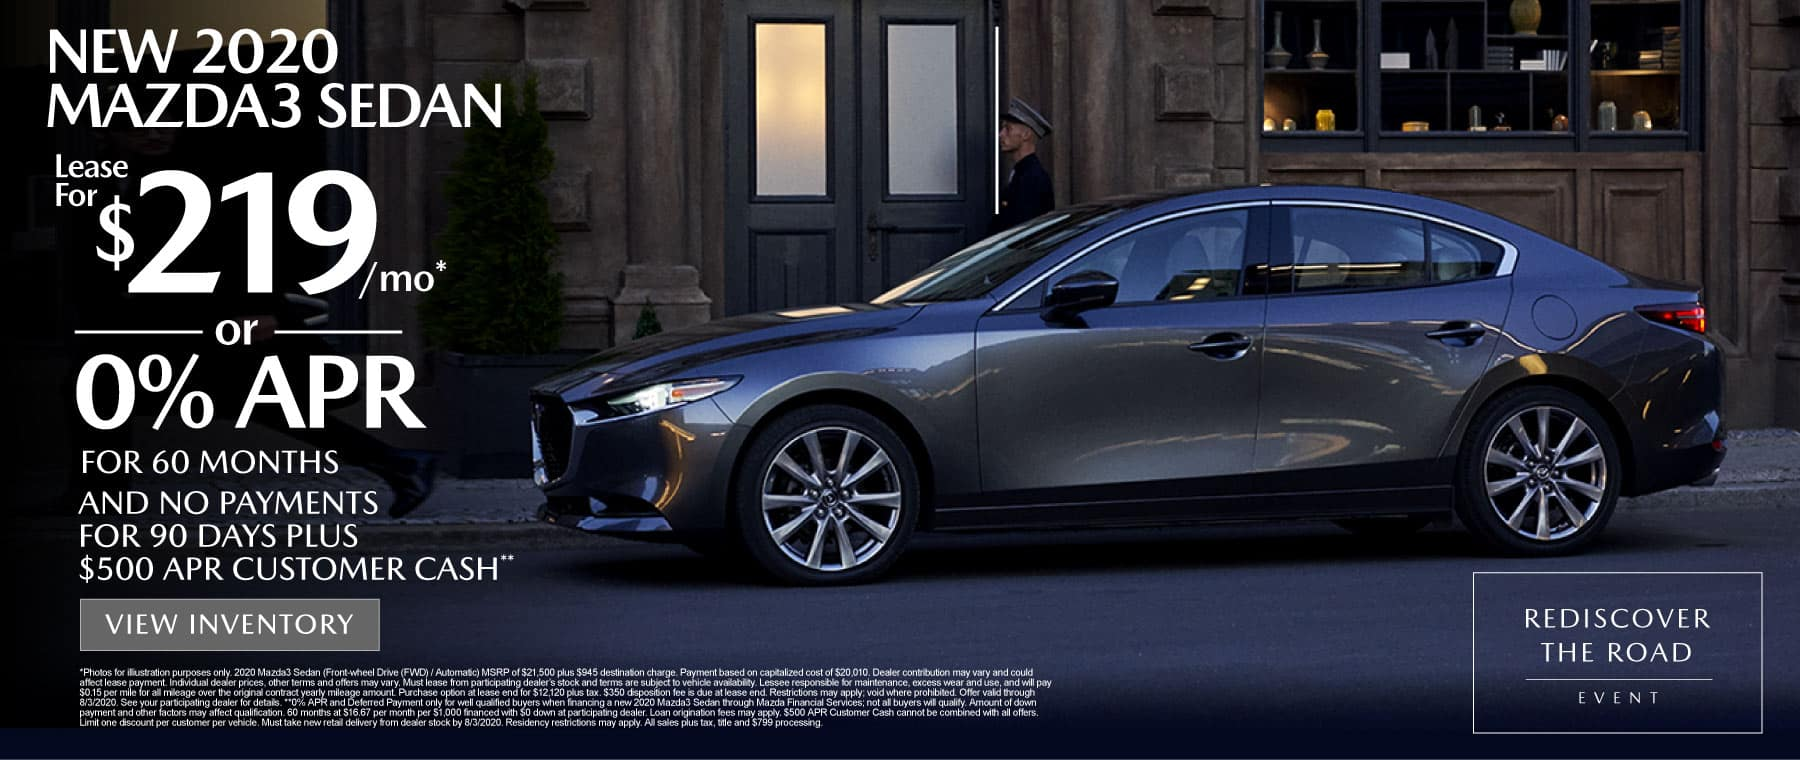 2020 Mazda3 Sedan lease for $219 a month or 0% APR for 60 mos and no payments for 90 days plus $500 APR customer cash